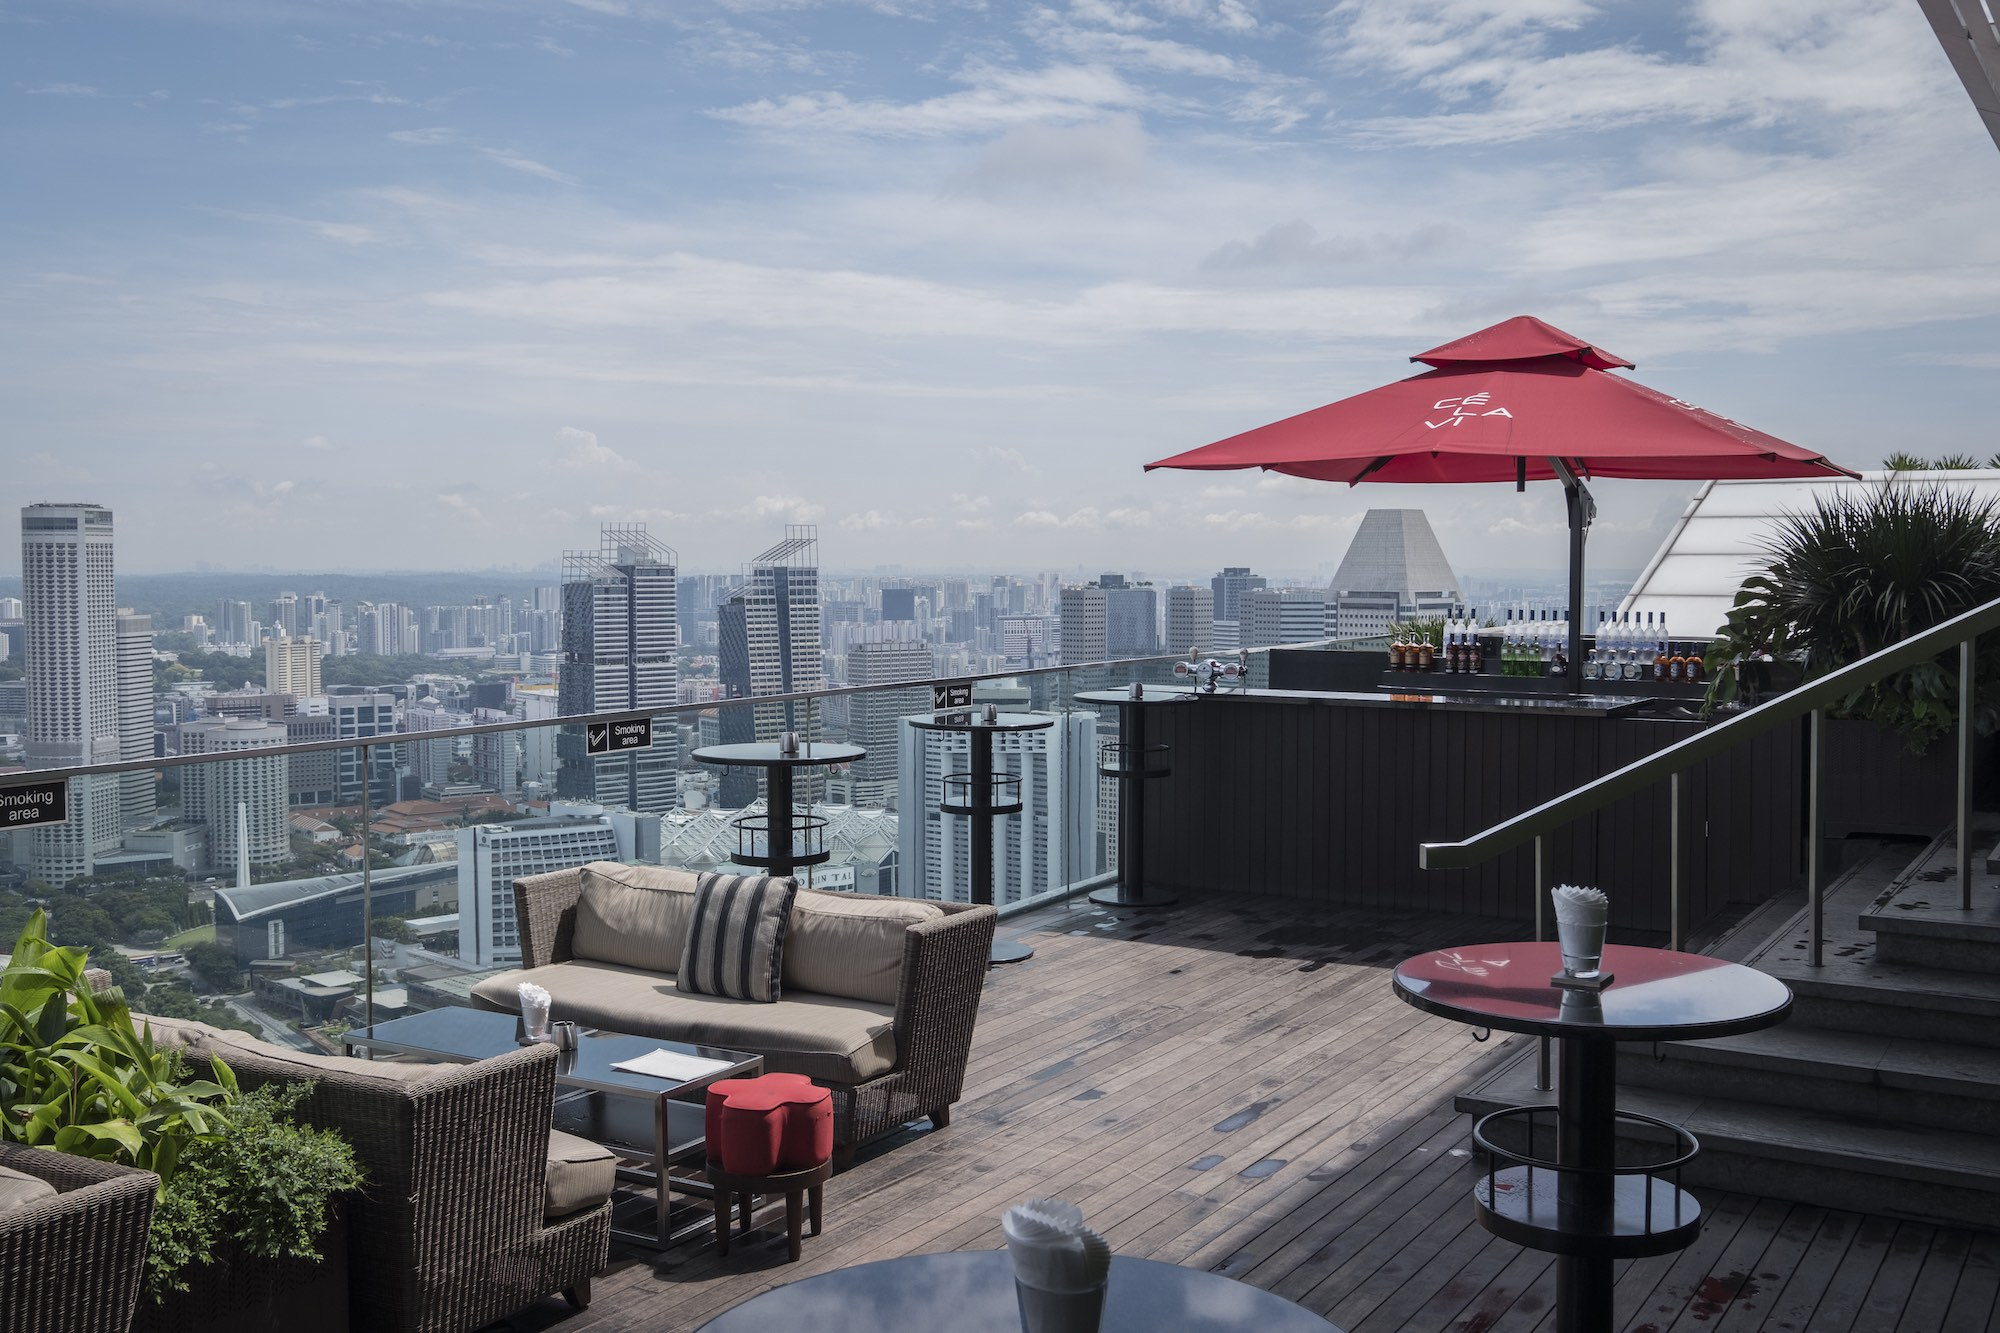 CE LA VI SG roof top Hospitality restaurant bar hotel Photography services singapore commercial